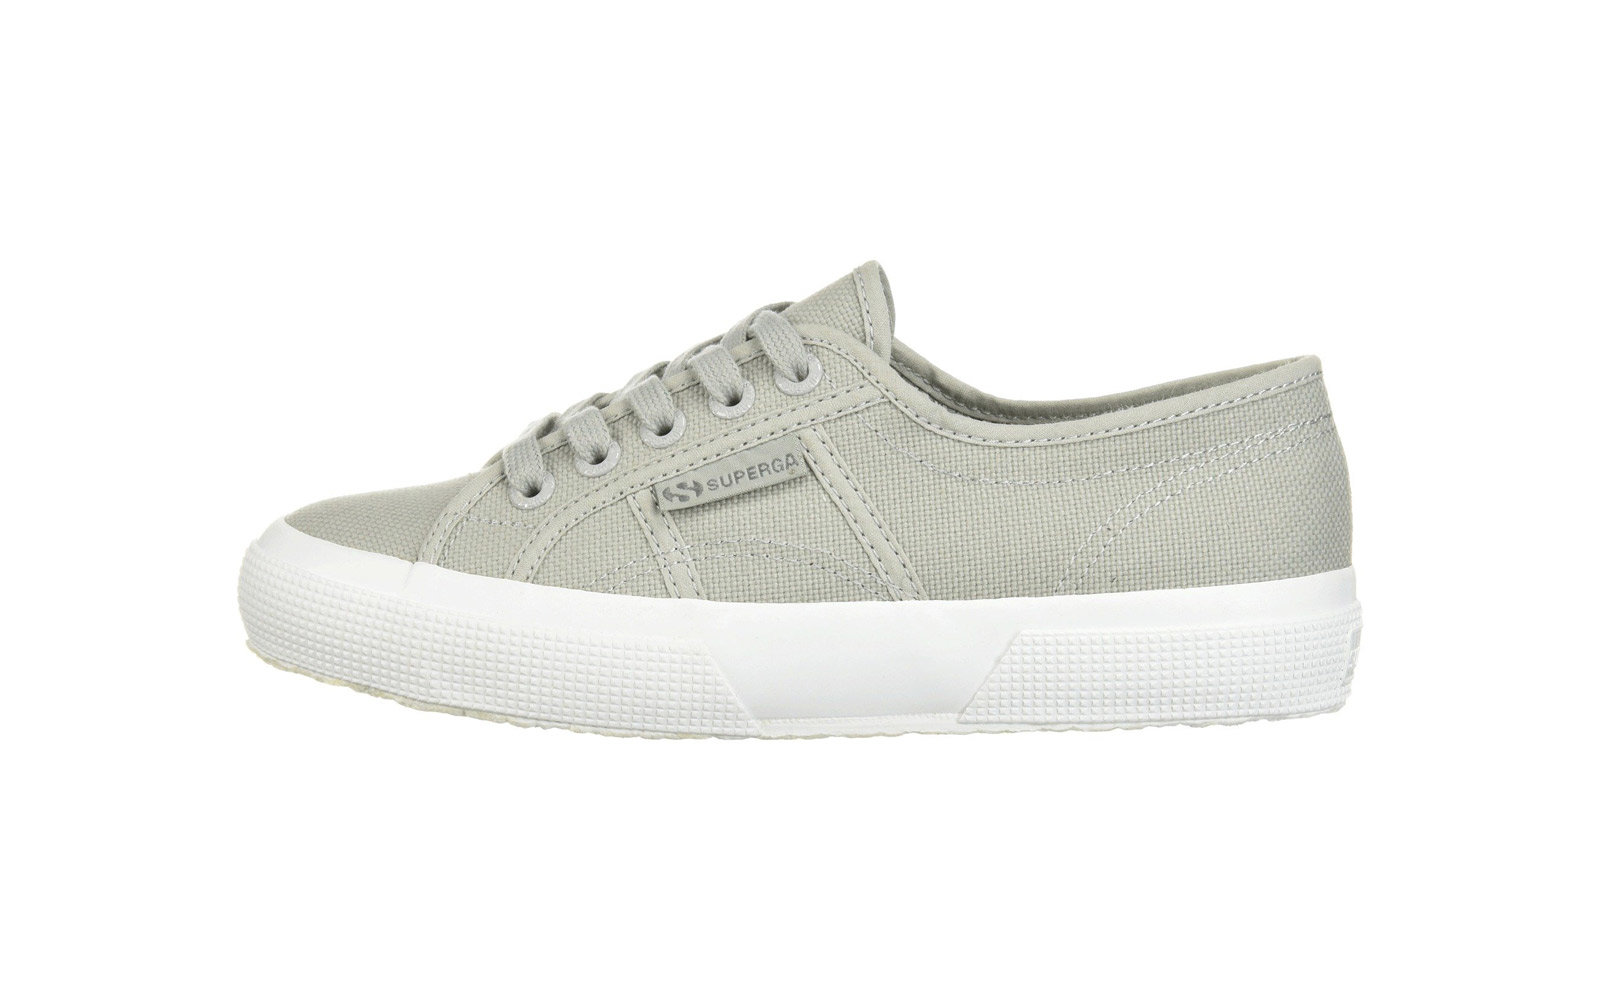 Shoes Friendly For 19 Leisure Comfy Travel Made Walking wPq8tFq